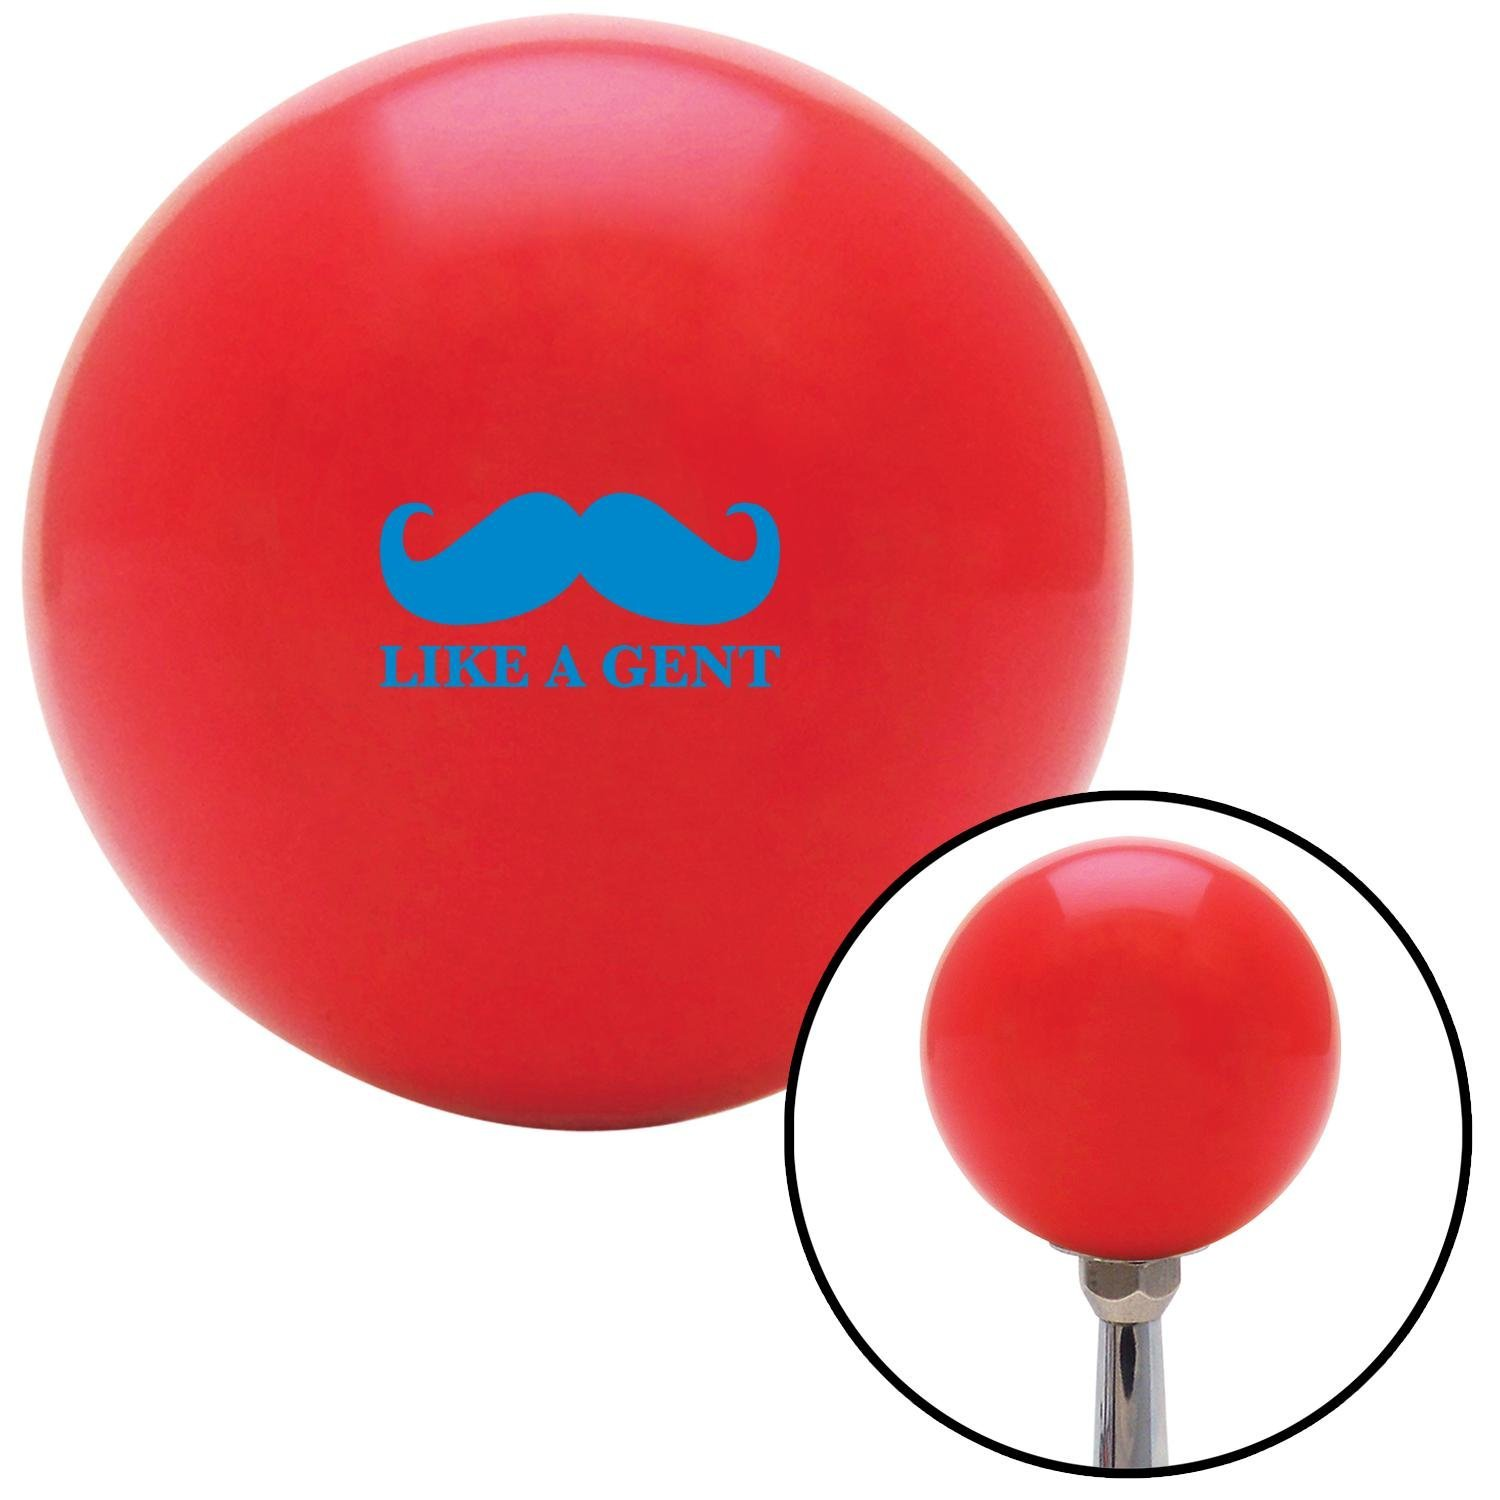 ASCSNX1592491 Blue Like A Gent Red with M16 x 1.5 Insert American Shifter 271459 Shift Knob